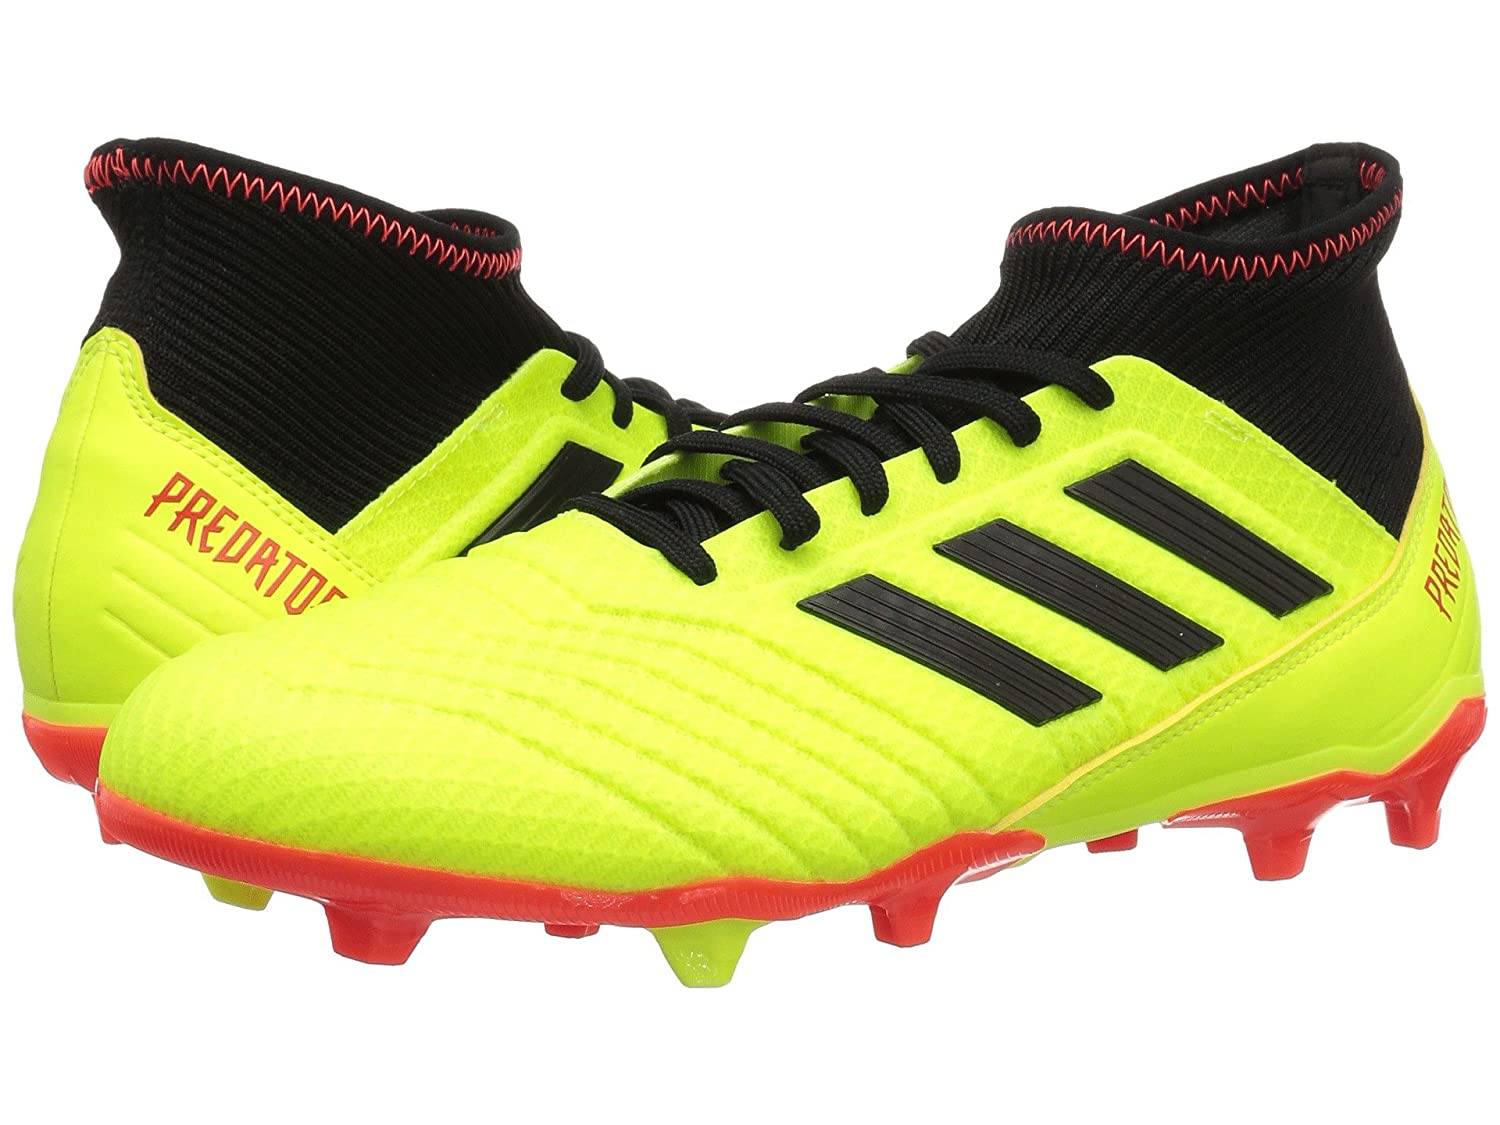 [adidas(アディダス)] メンズサッカーシューズ靴 Predator 18.3 FG Solar Yellow/Black/Solar Red 8 (26cm) D Medium B07DP5NF5M